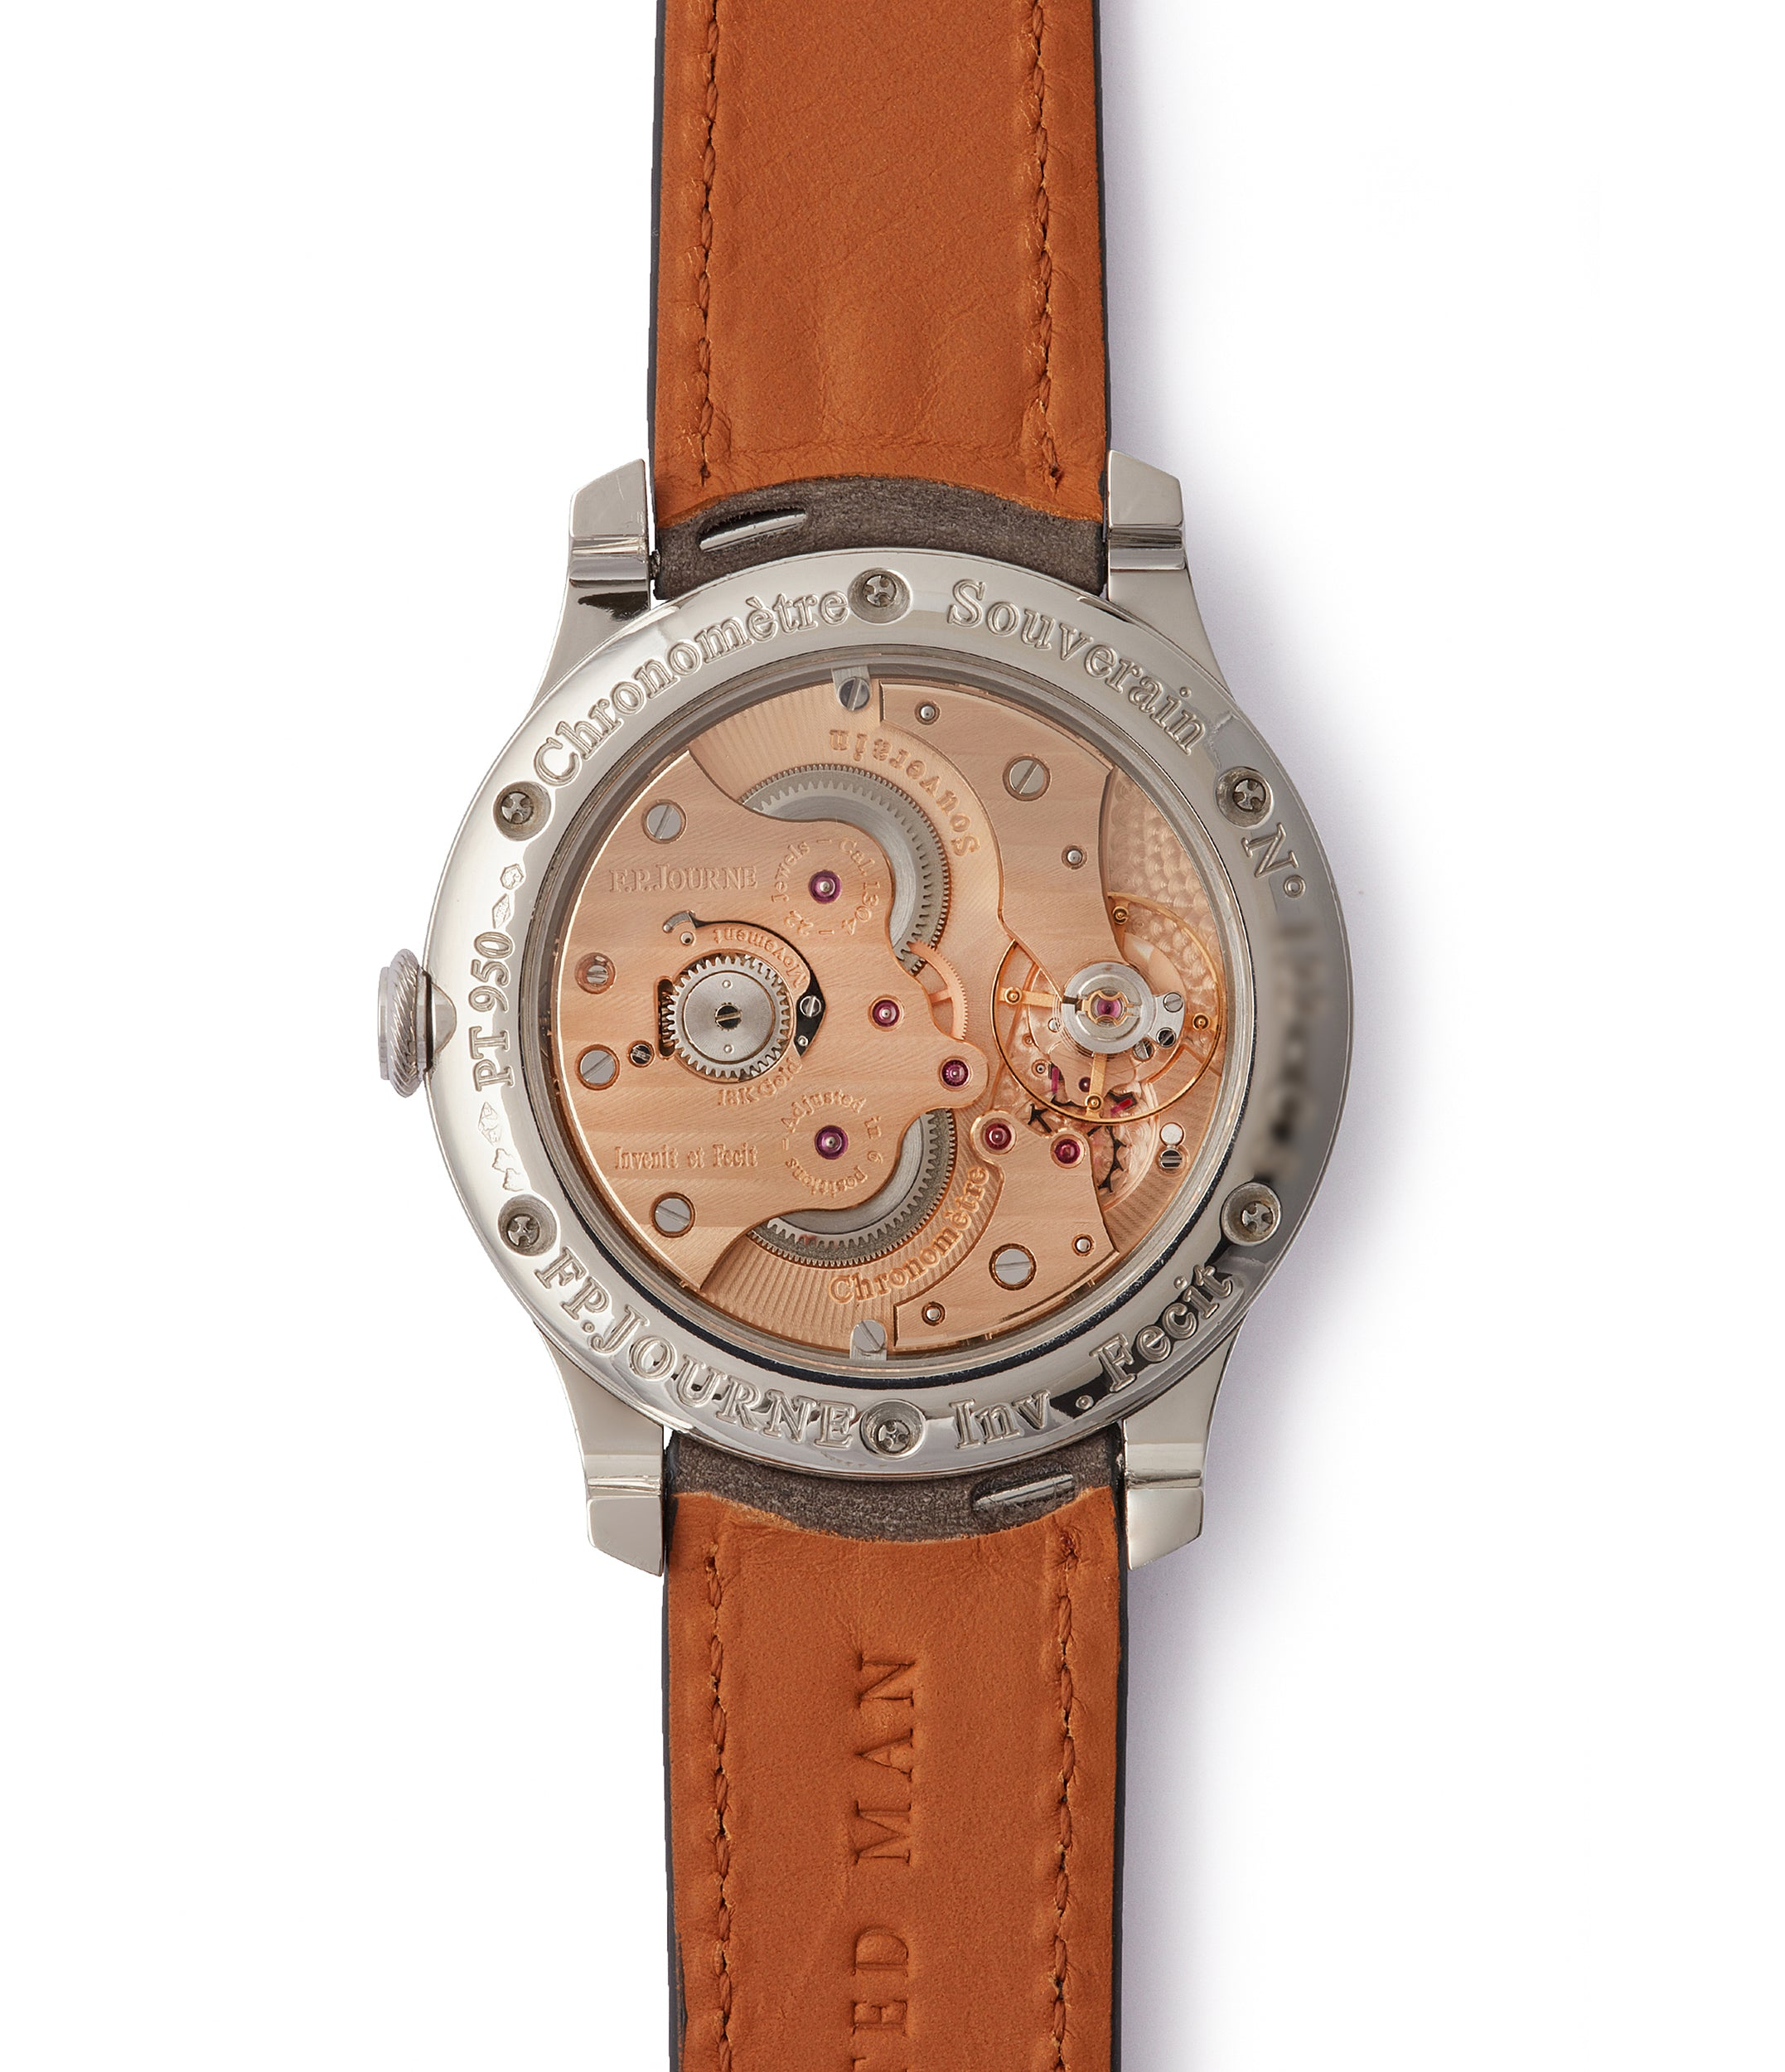 rose gold movement F. P. Journe Chronometre Souverain platinum 40mm Cal. 1304 manual-winding silver dial time-only dress watch for sale online at A Collected Man London UK specialist independent watchmakers